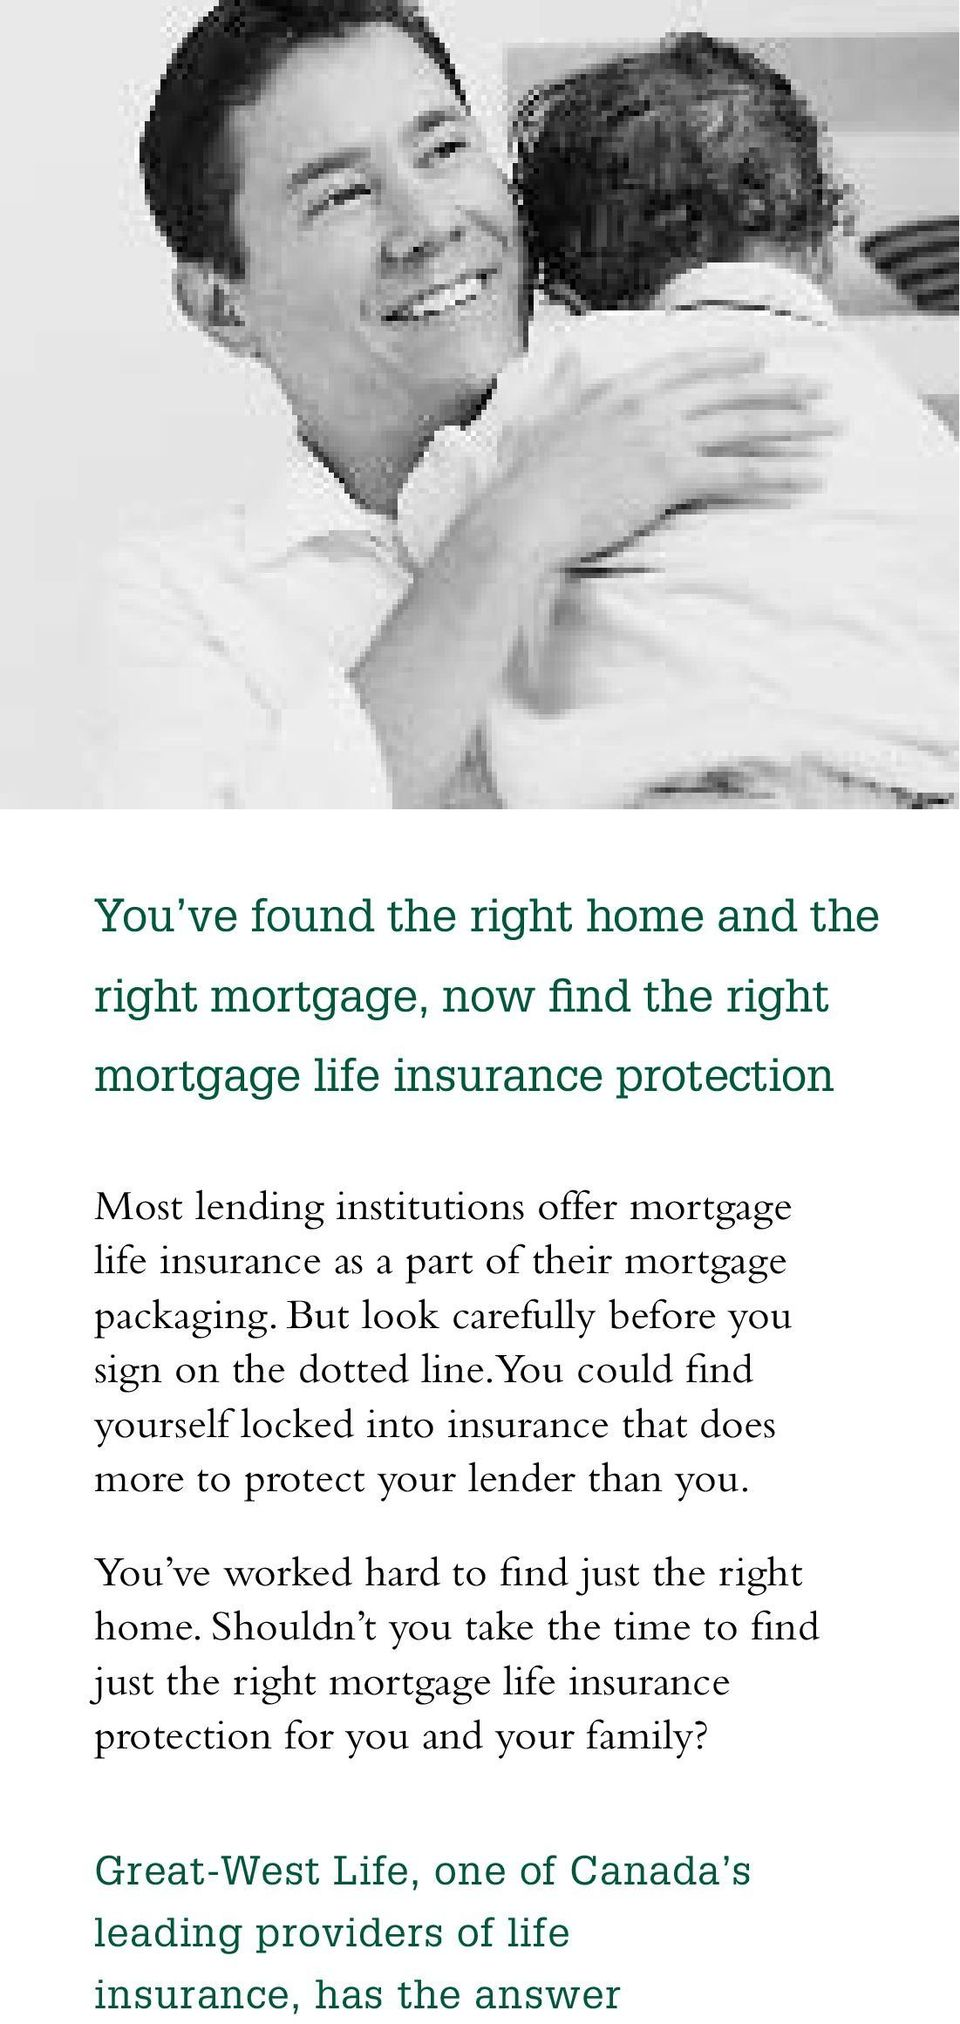 You could find yourself locked into insurance that does more to protect your lender than you. You ve worked hard to find just the right home.